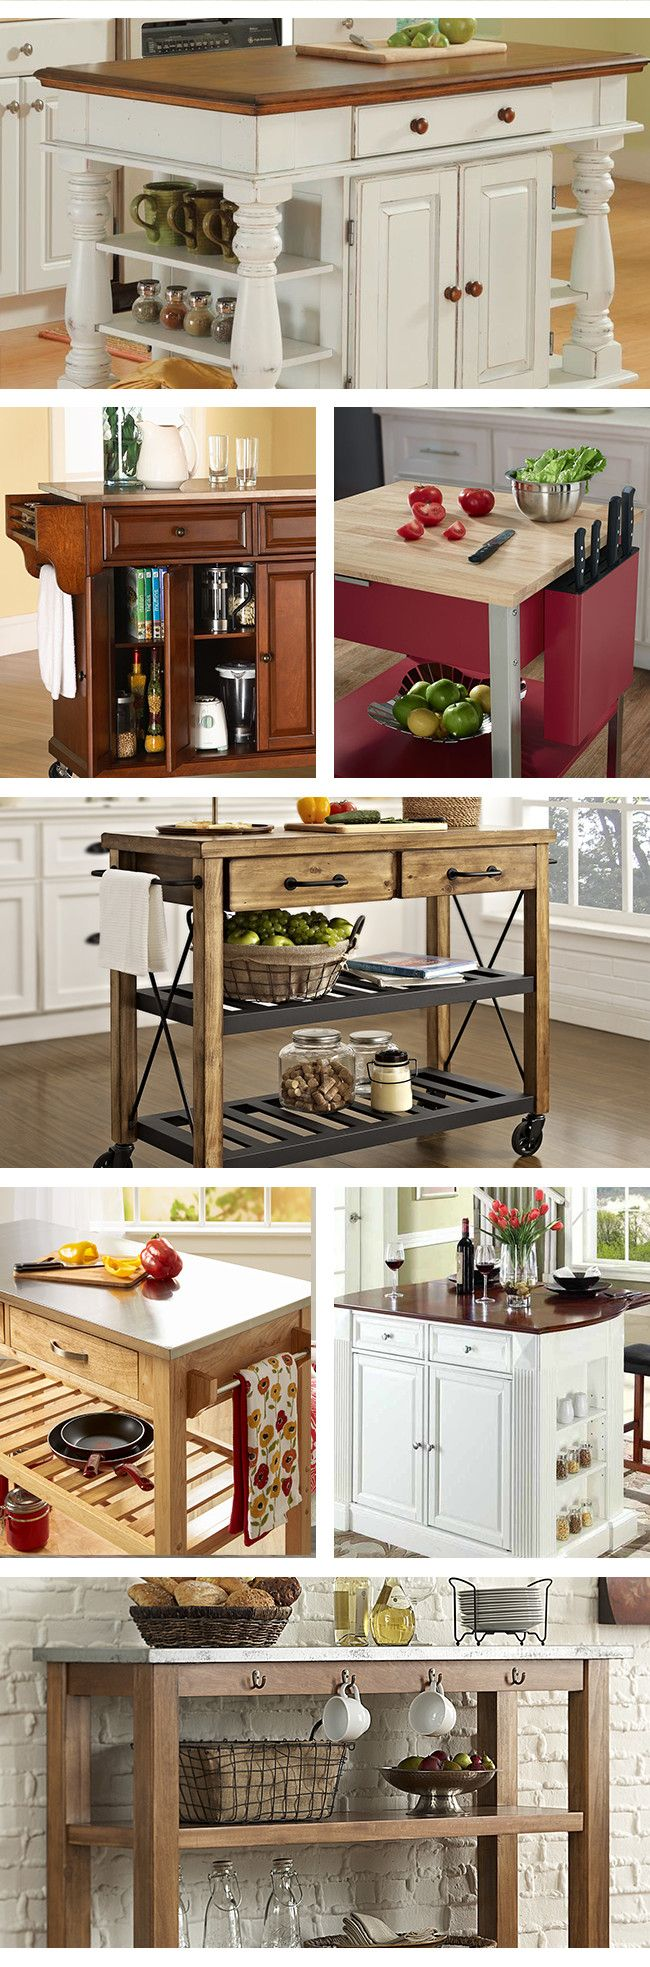 Need additional workspace and storage in your kitchen without